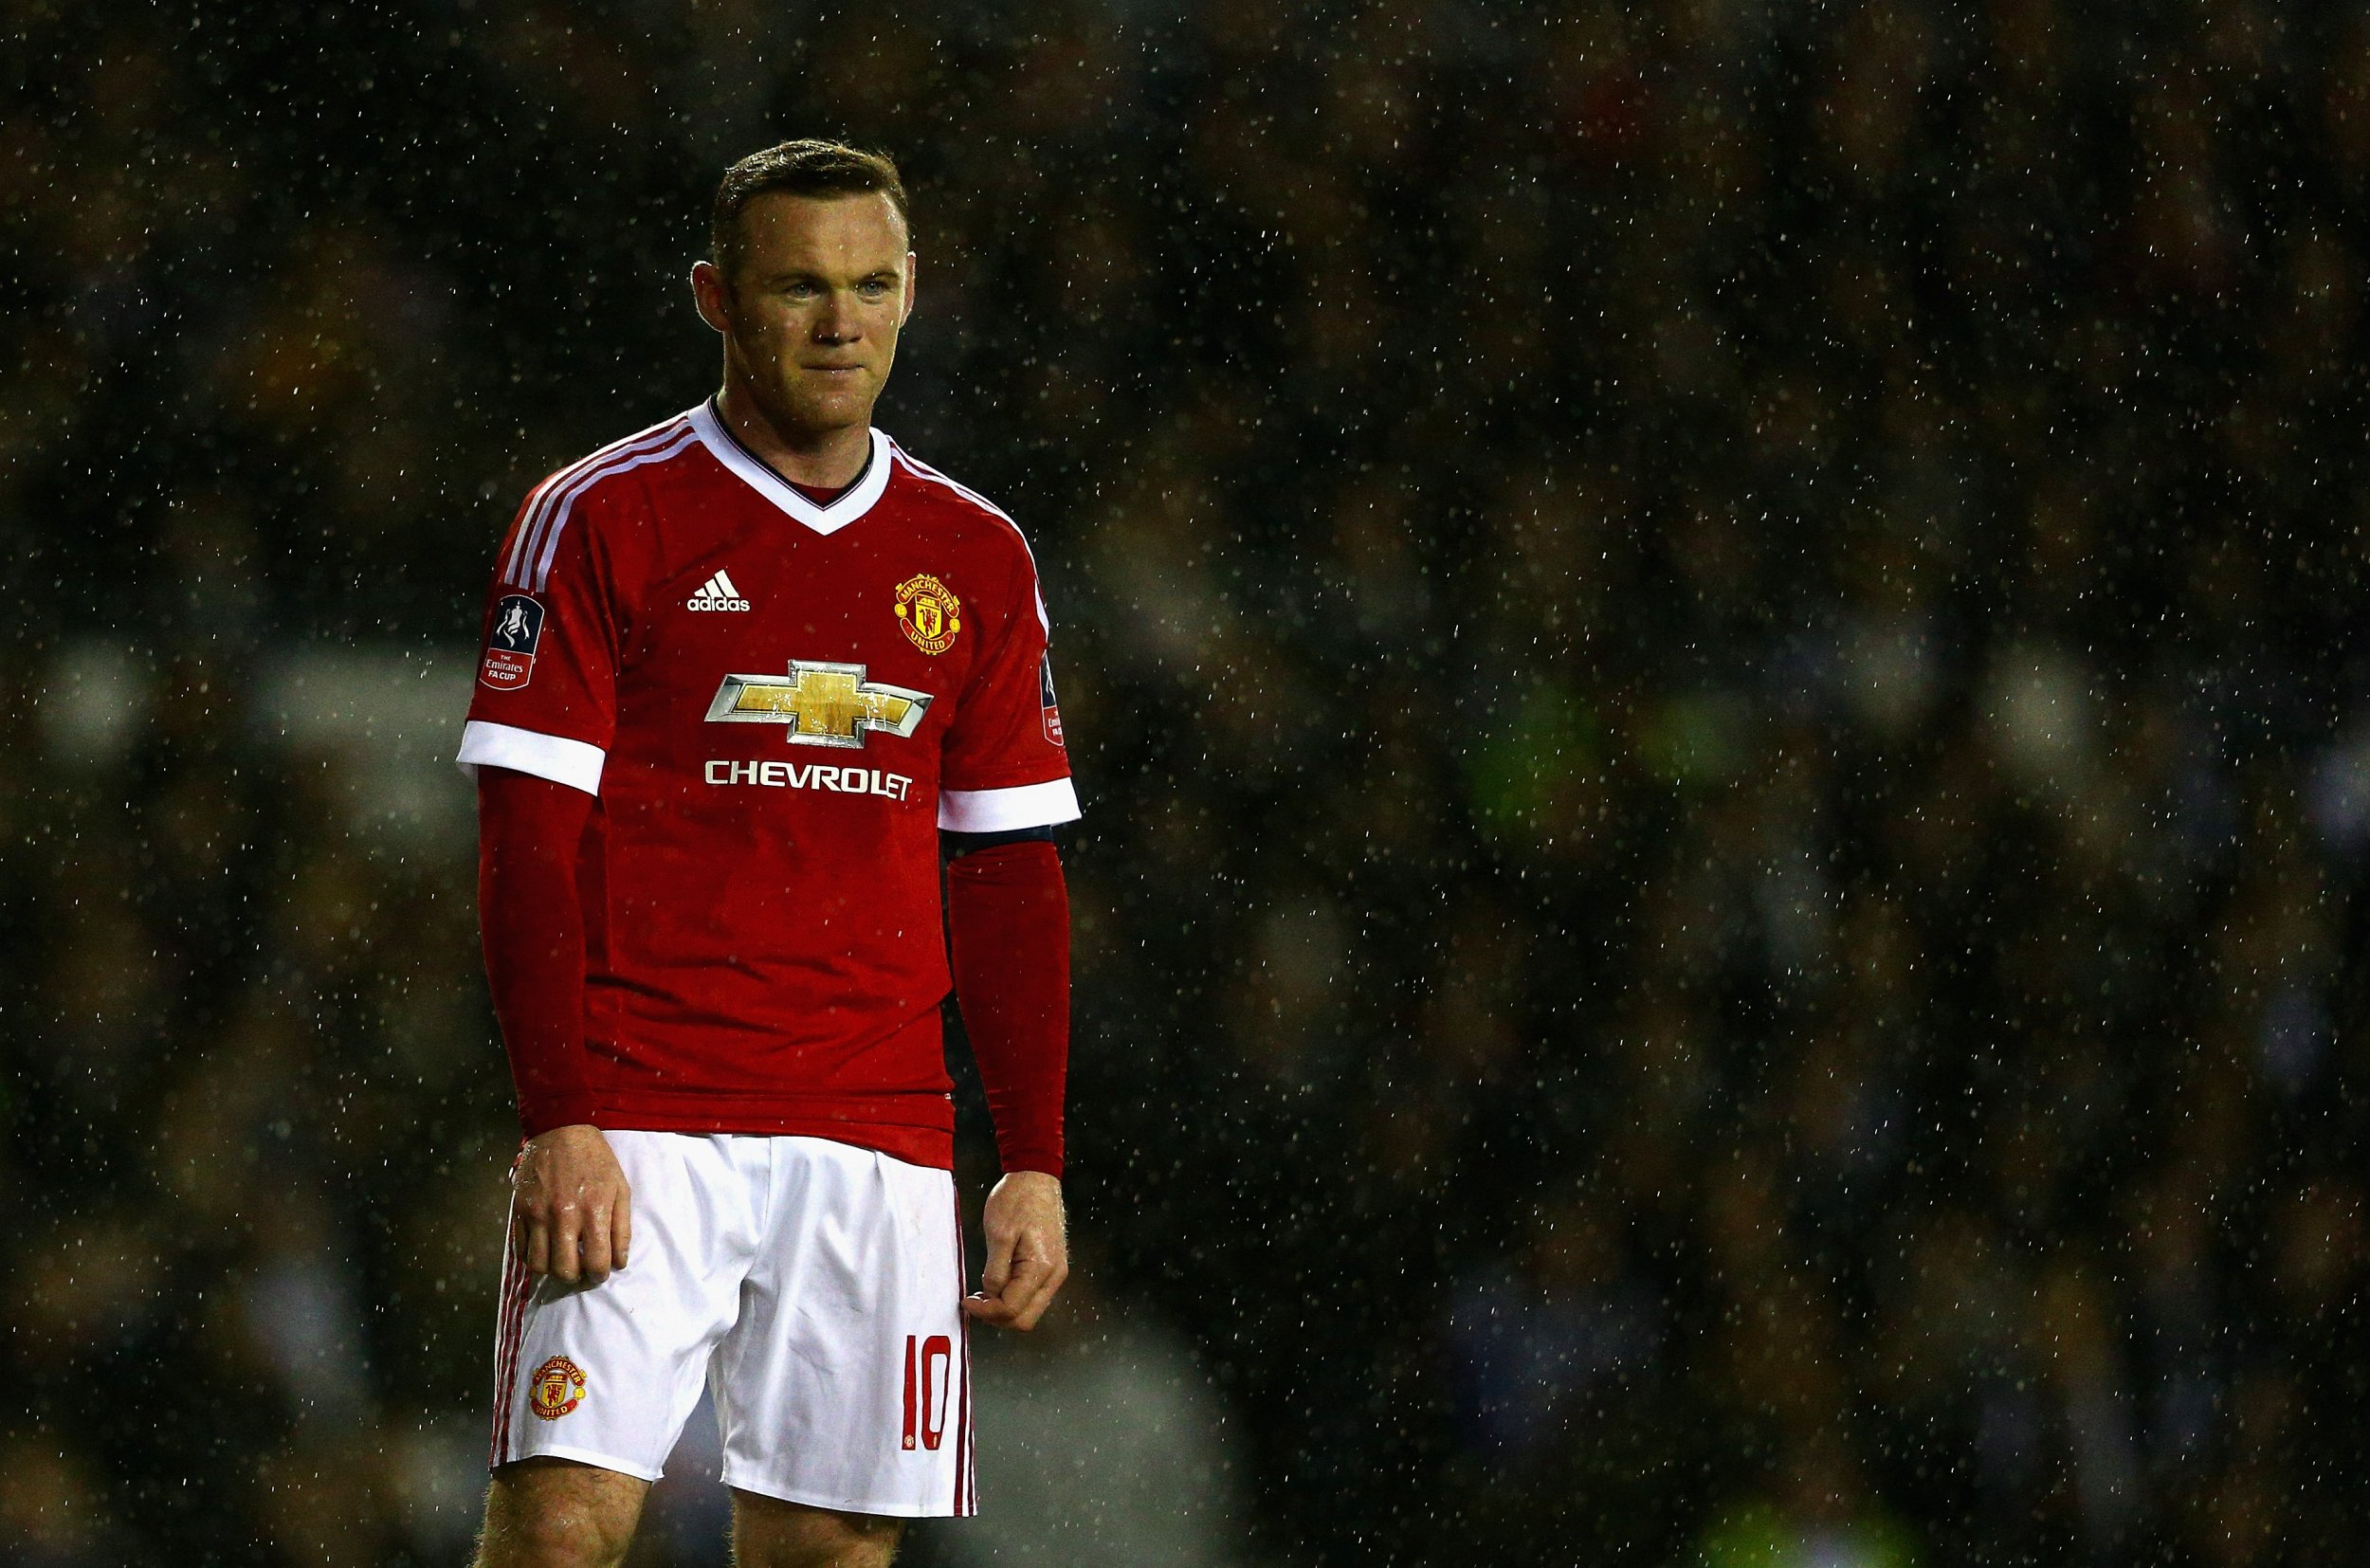 Manchester United captain Wayne Rooney in the FA Cup in January